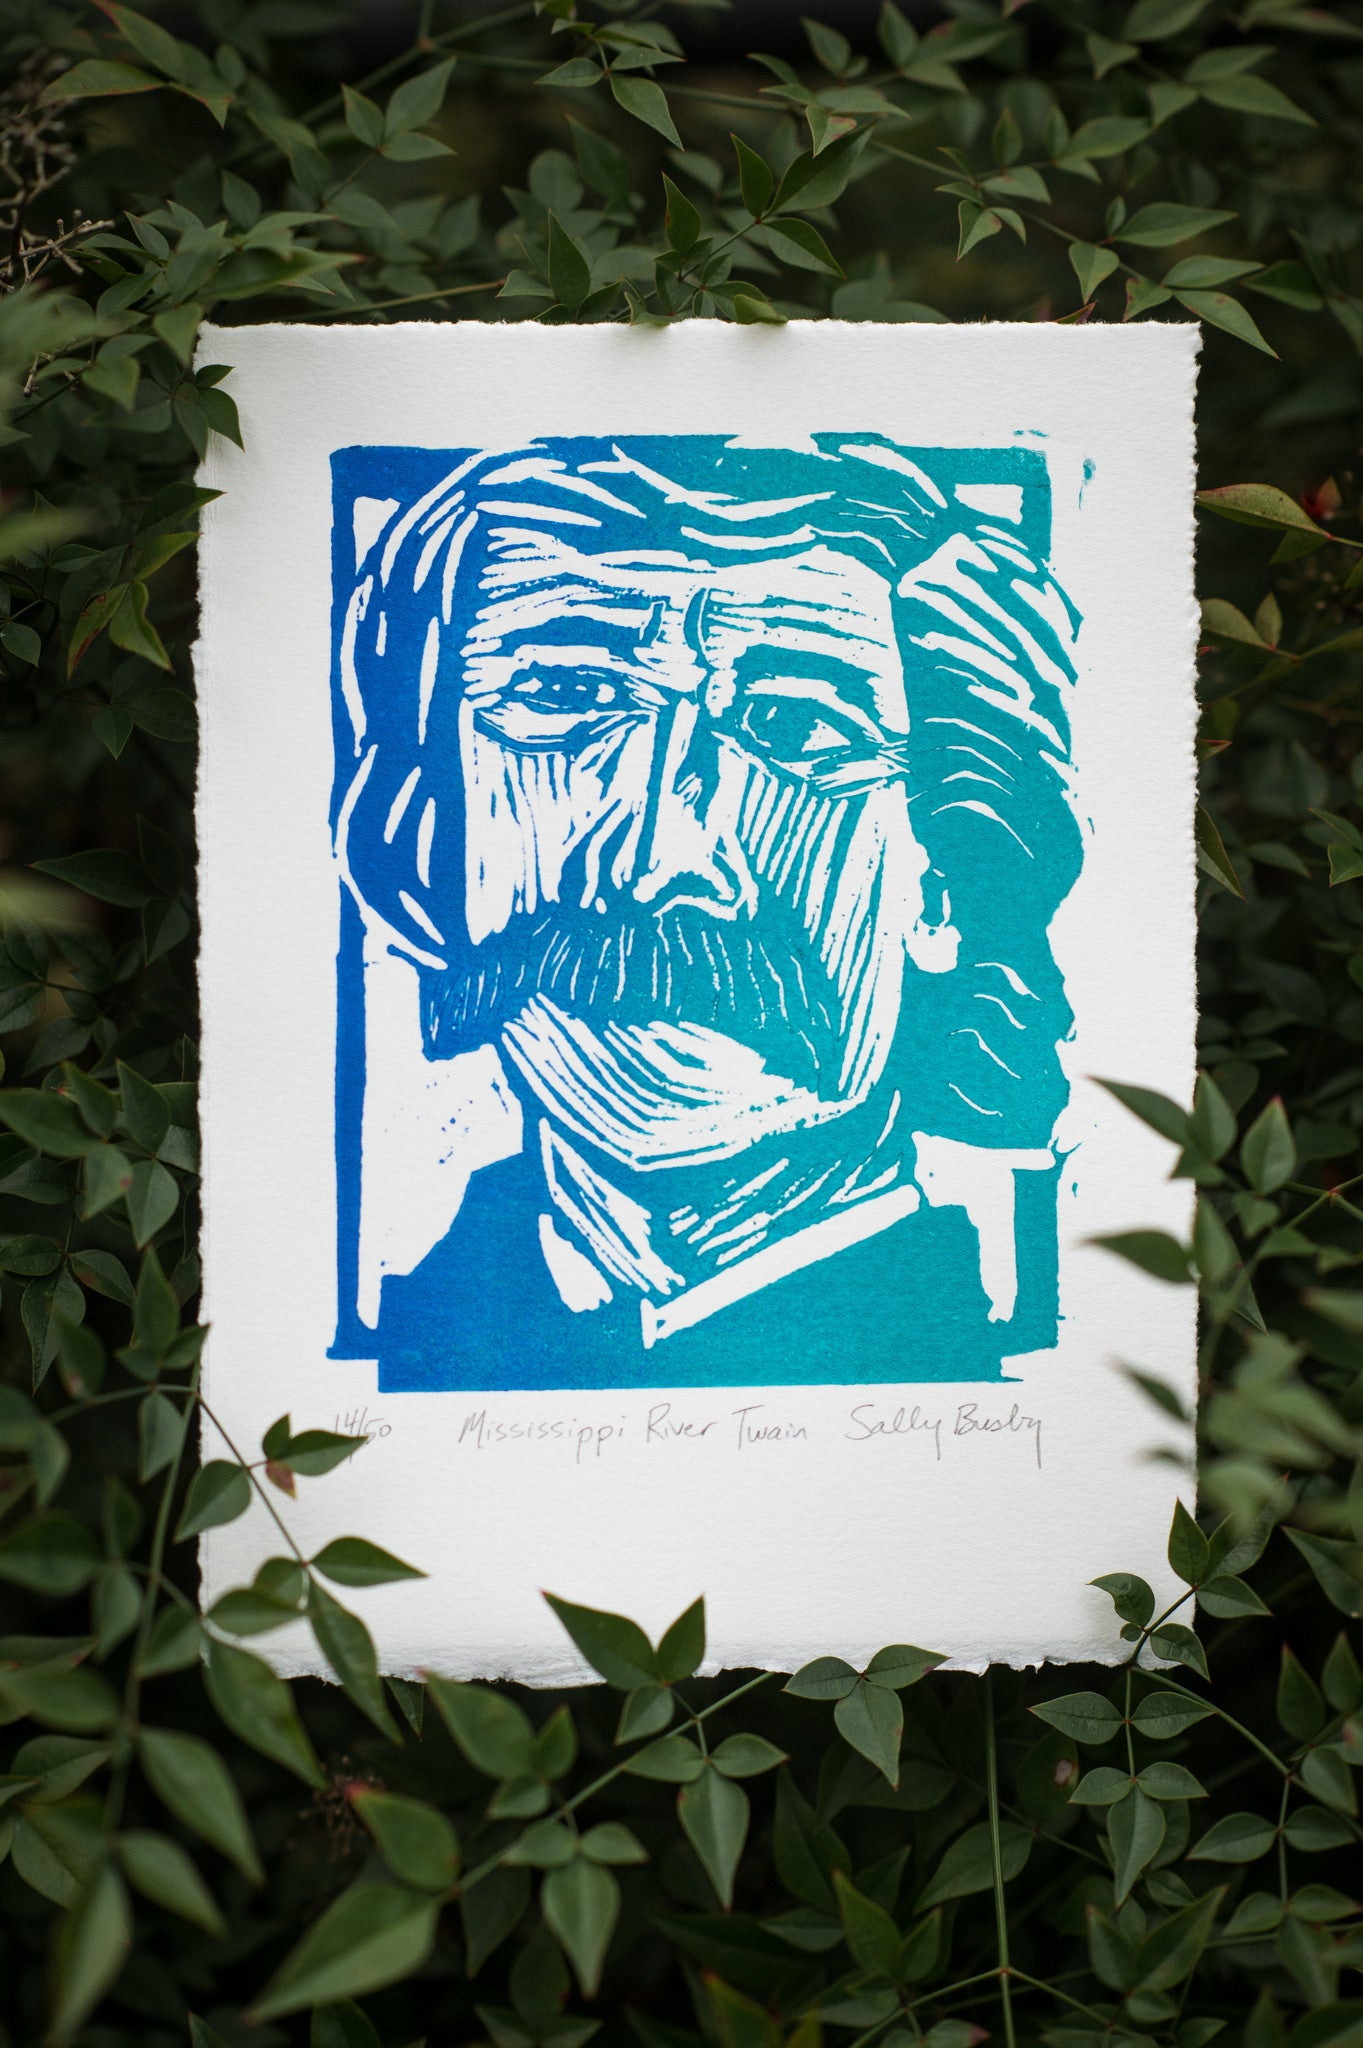 Mark Twain Hand Pulled Linocut Blue River colored limited edition art print Literary gift by Eastgrove studio